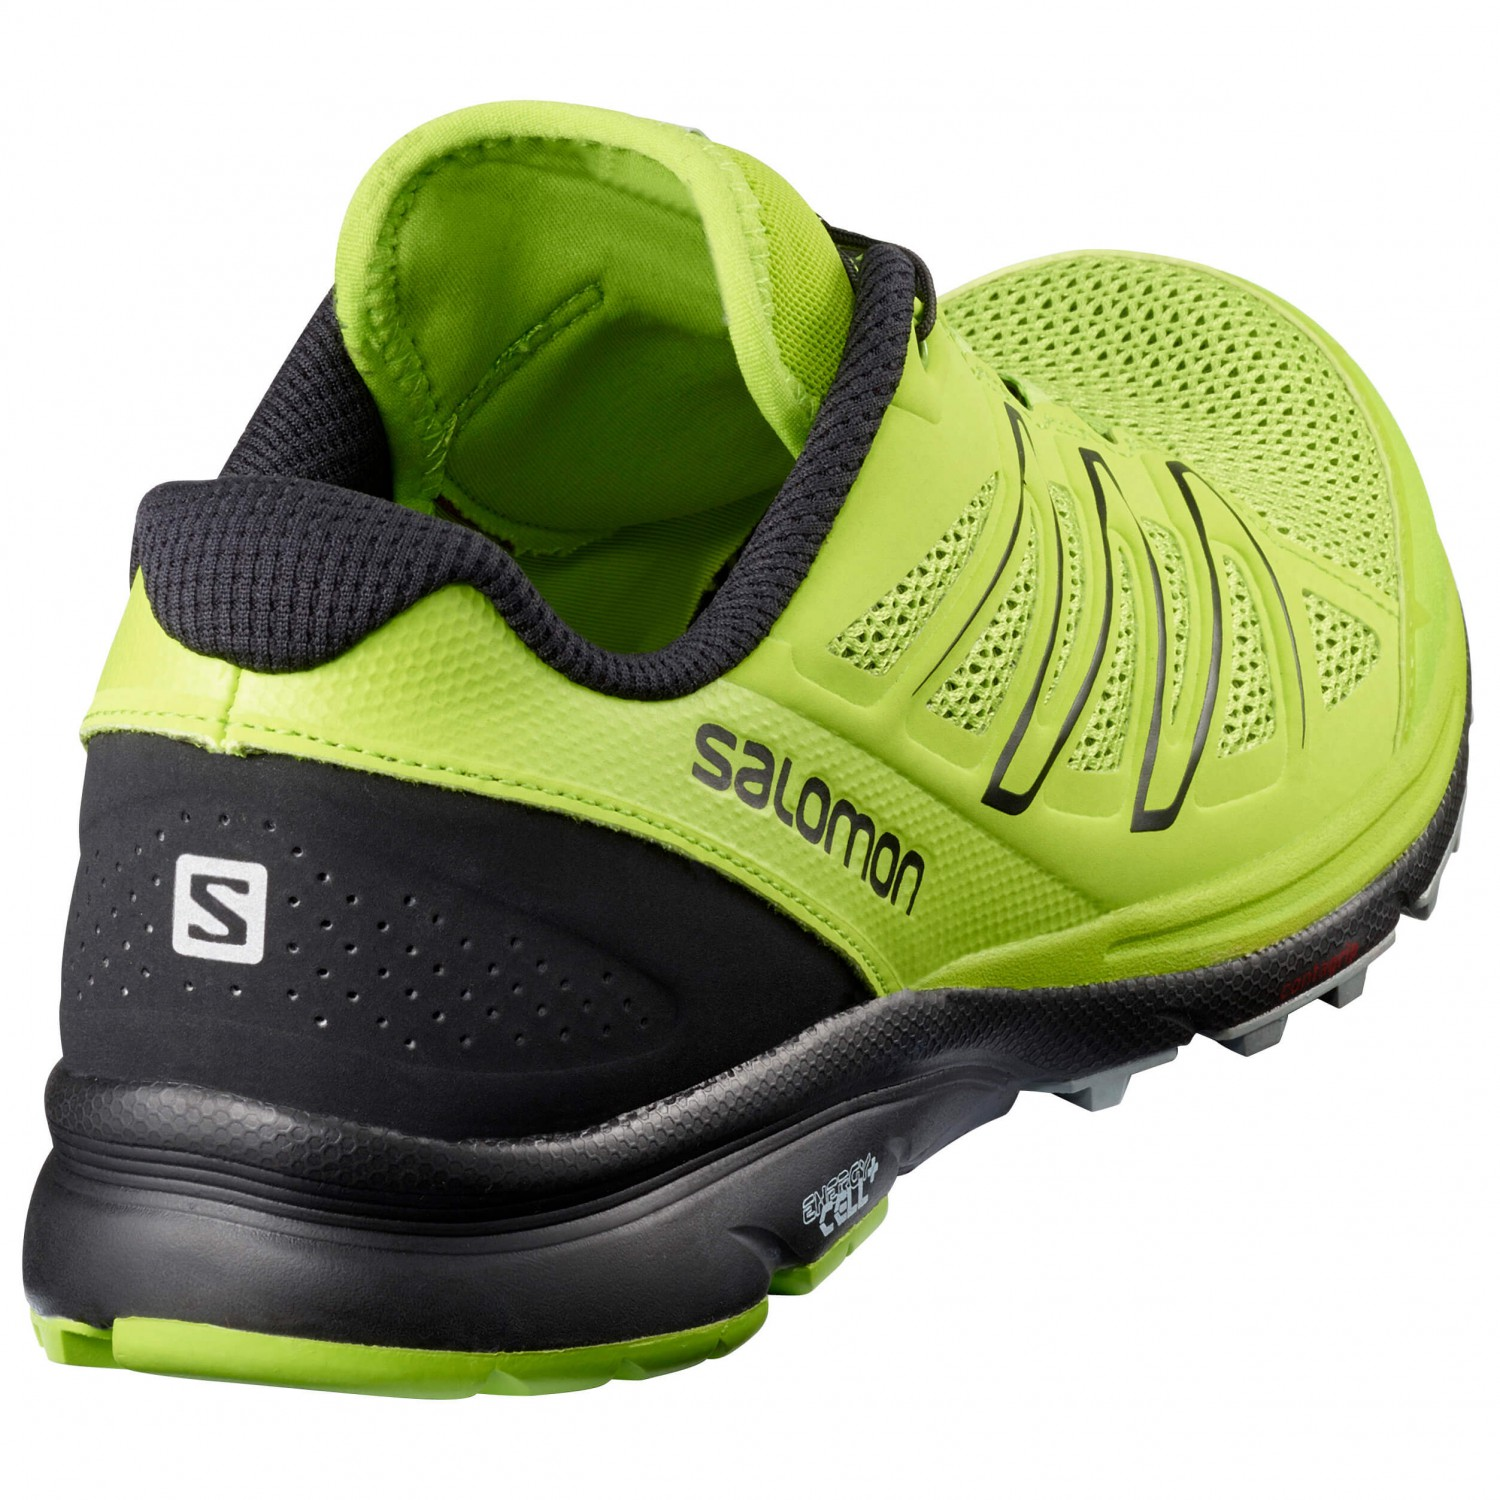 shoes Salomon Marin online Trail running Men'sBuy Sense c5jSAq3R4L